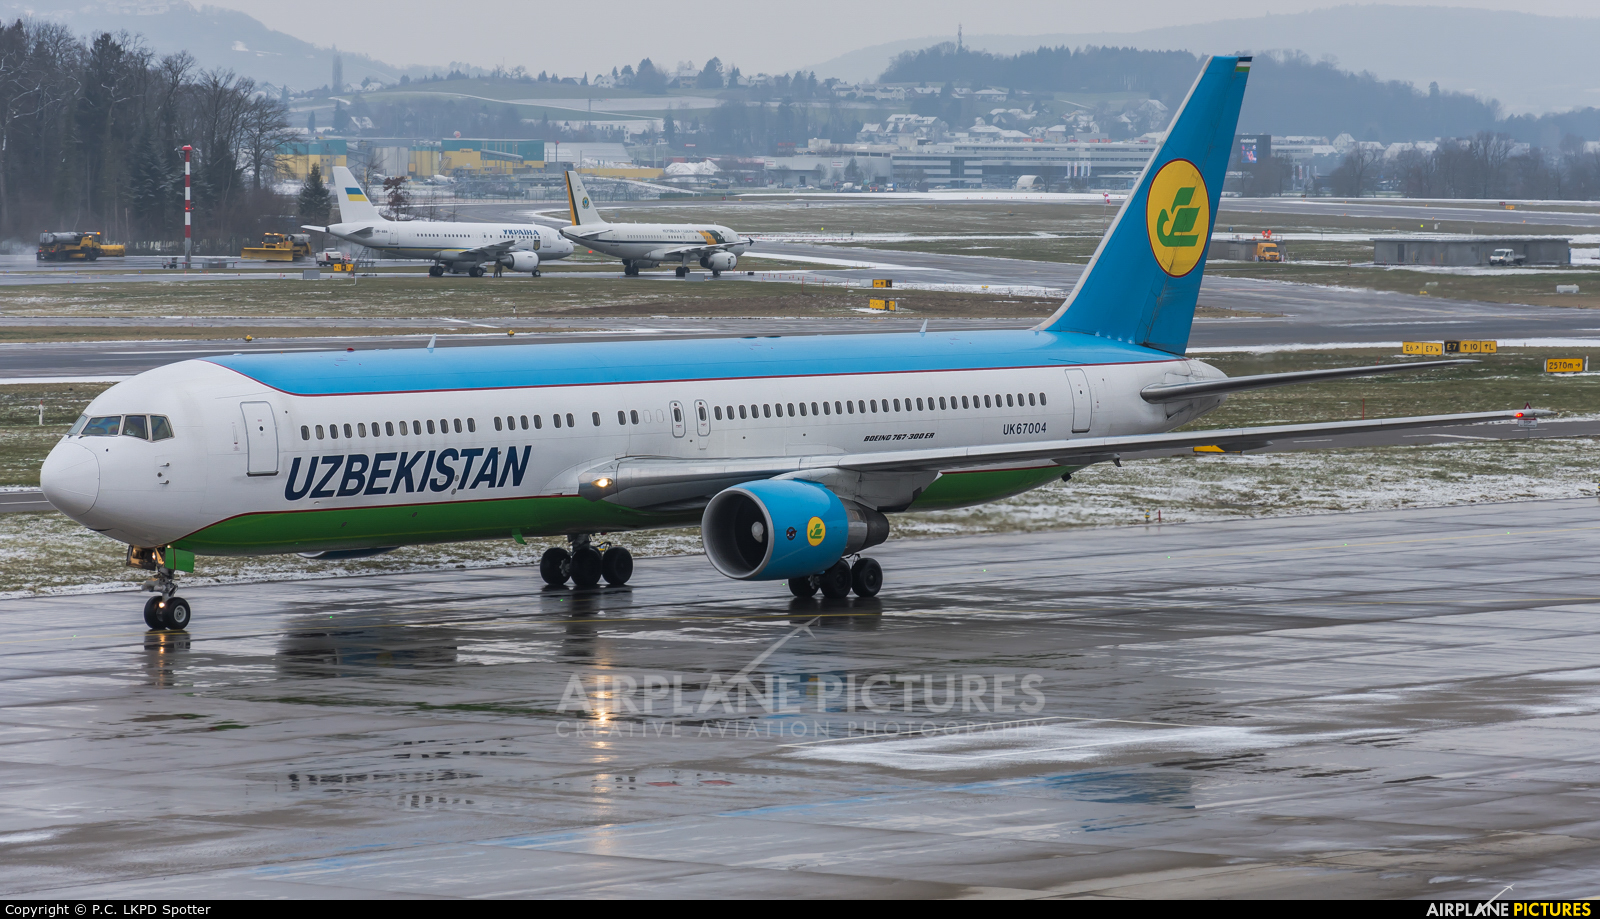 Uzbekistan Airways UK67004 aircraft at Zurich